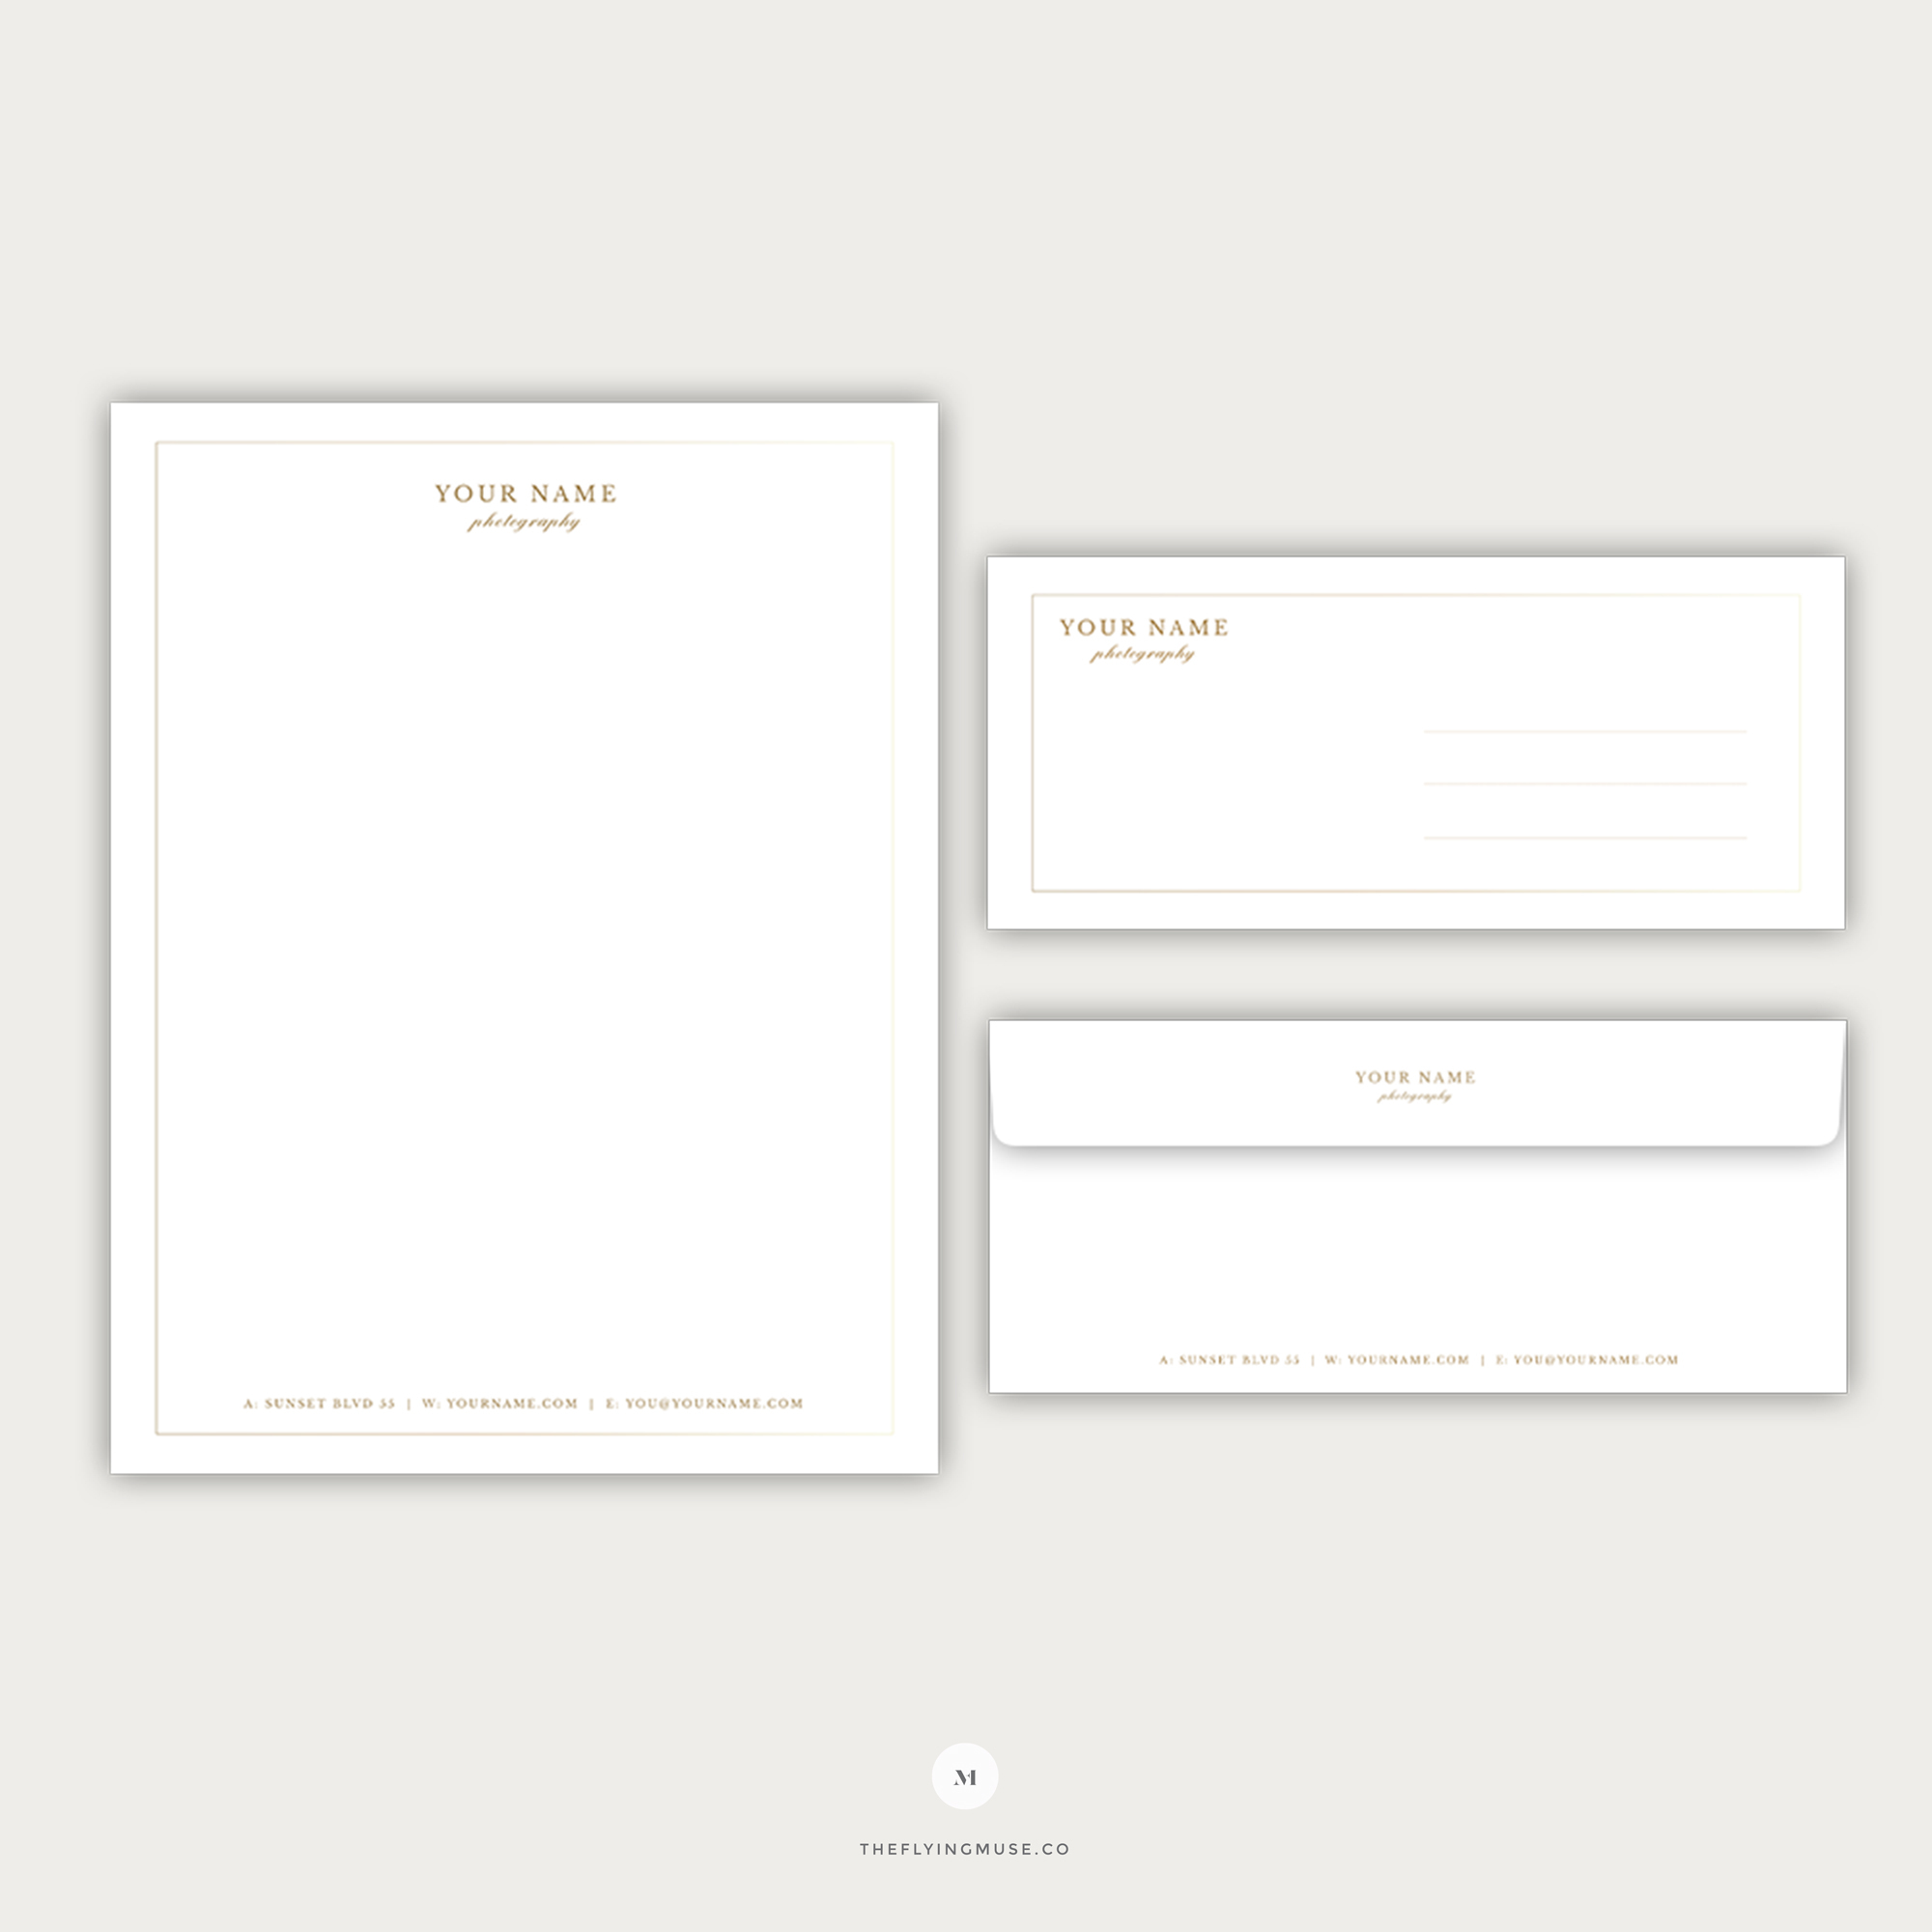 Photography Letterhead and Envelope Template Design